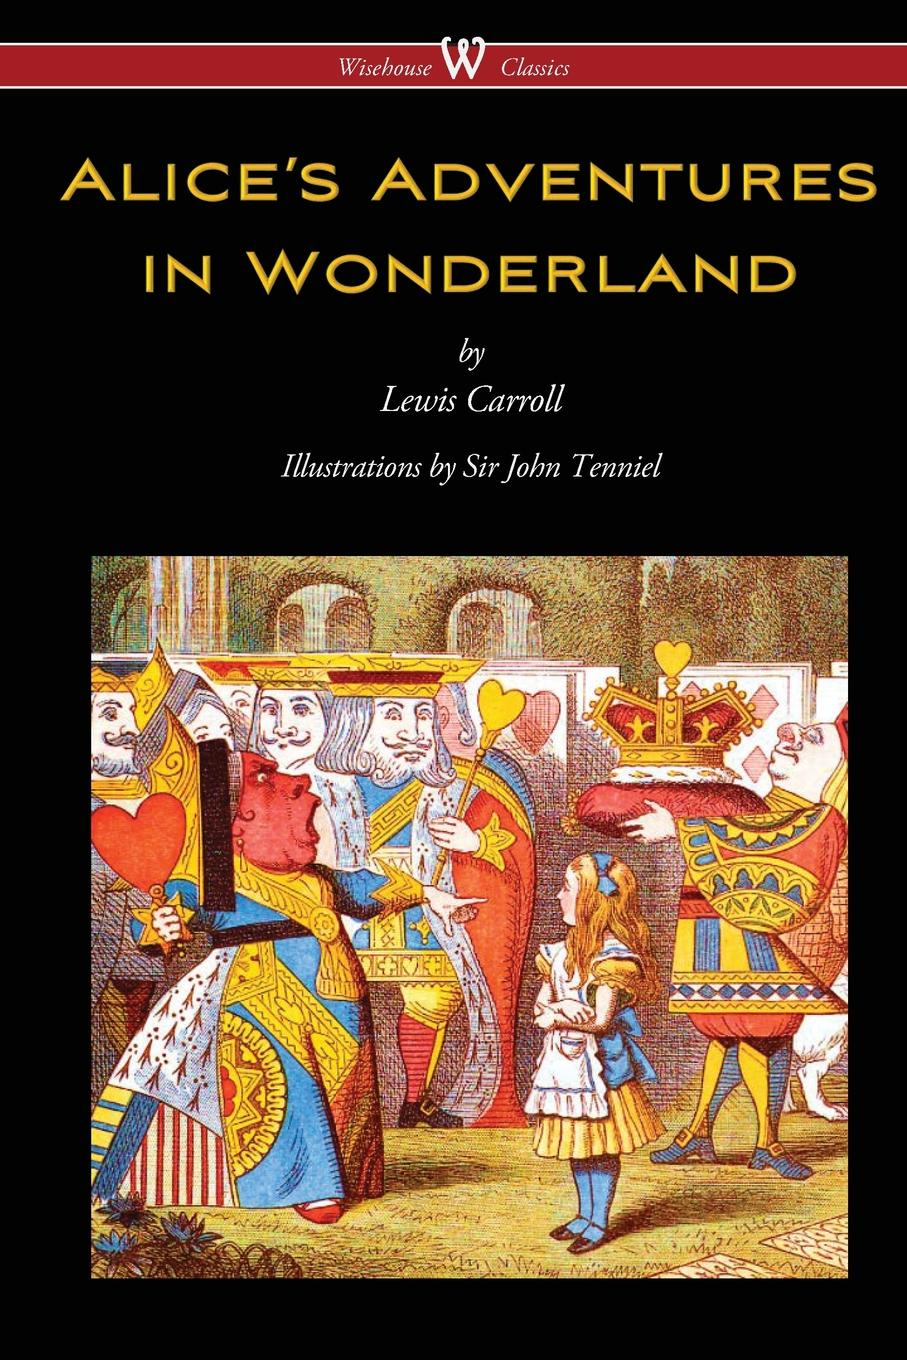 Lewis Carroll Alice.s Adventures in Wonderland (Wisehouse Classics - Original 1865 Edition with the Complete Illustrations by Sir John Tenniel) телефон ritmix rt 520